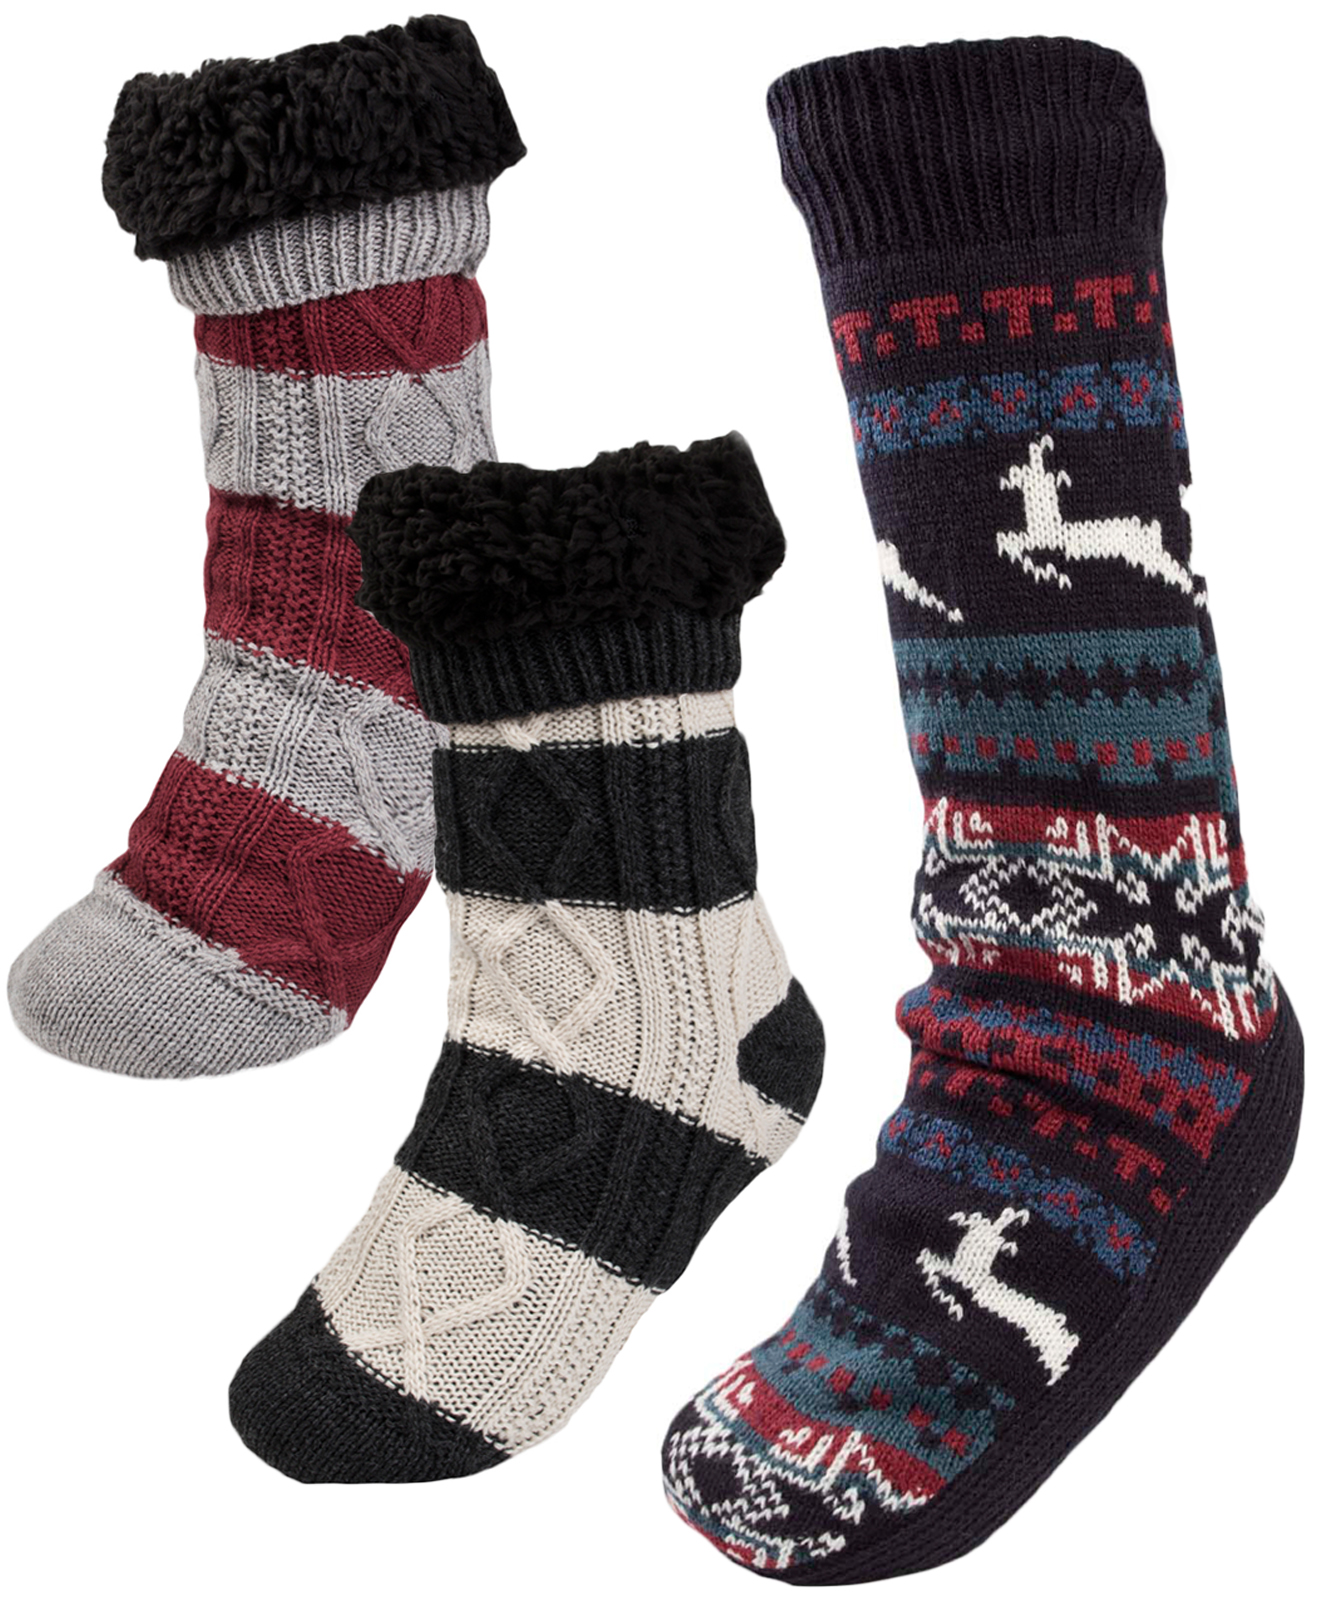 b588b865122a5 Mens Cosy Slipper Socks Warm Lined Knitted Bed Socks Booties Xmas Gift One  Size